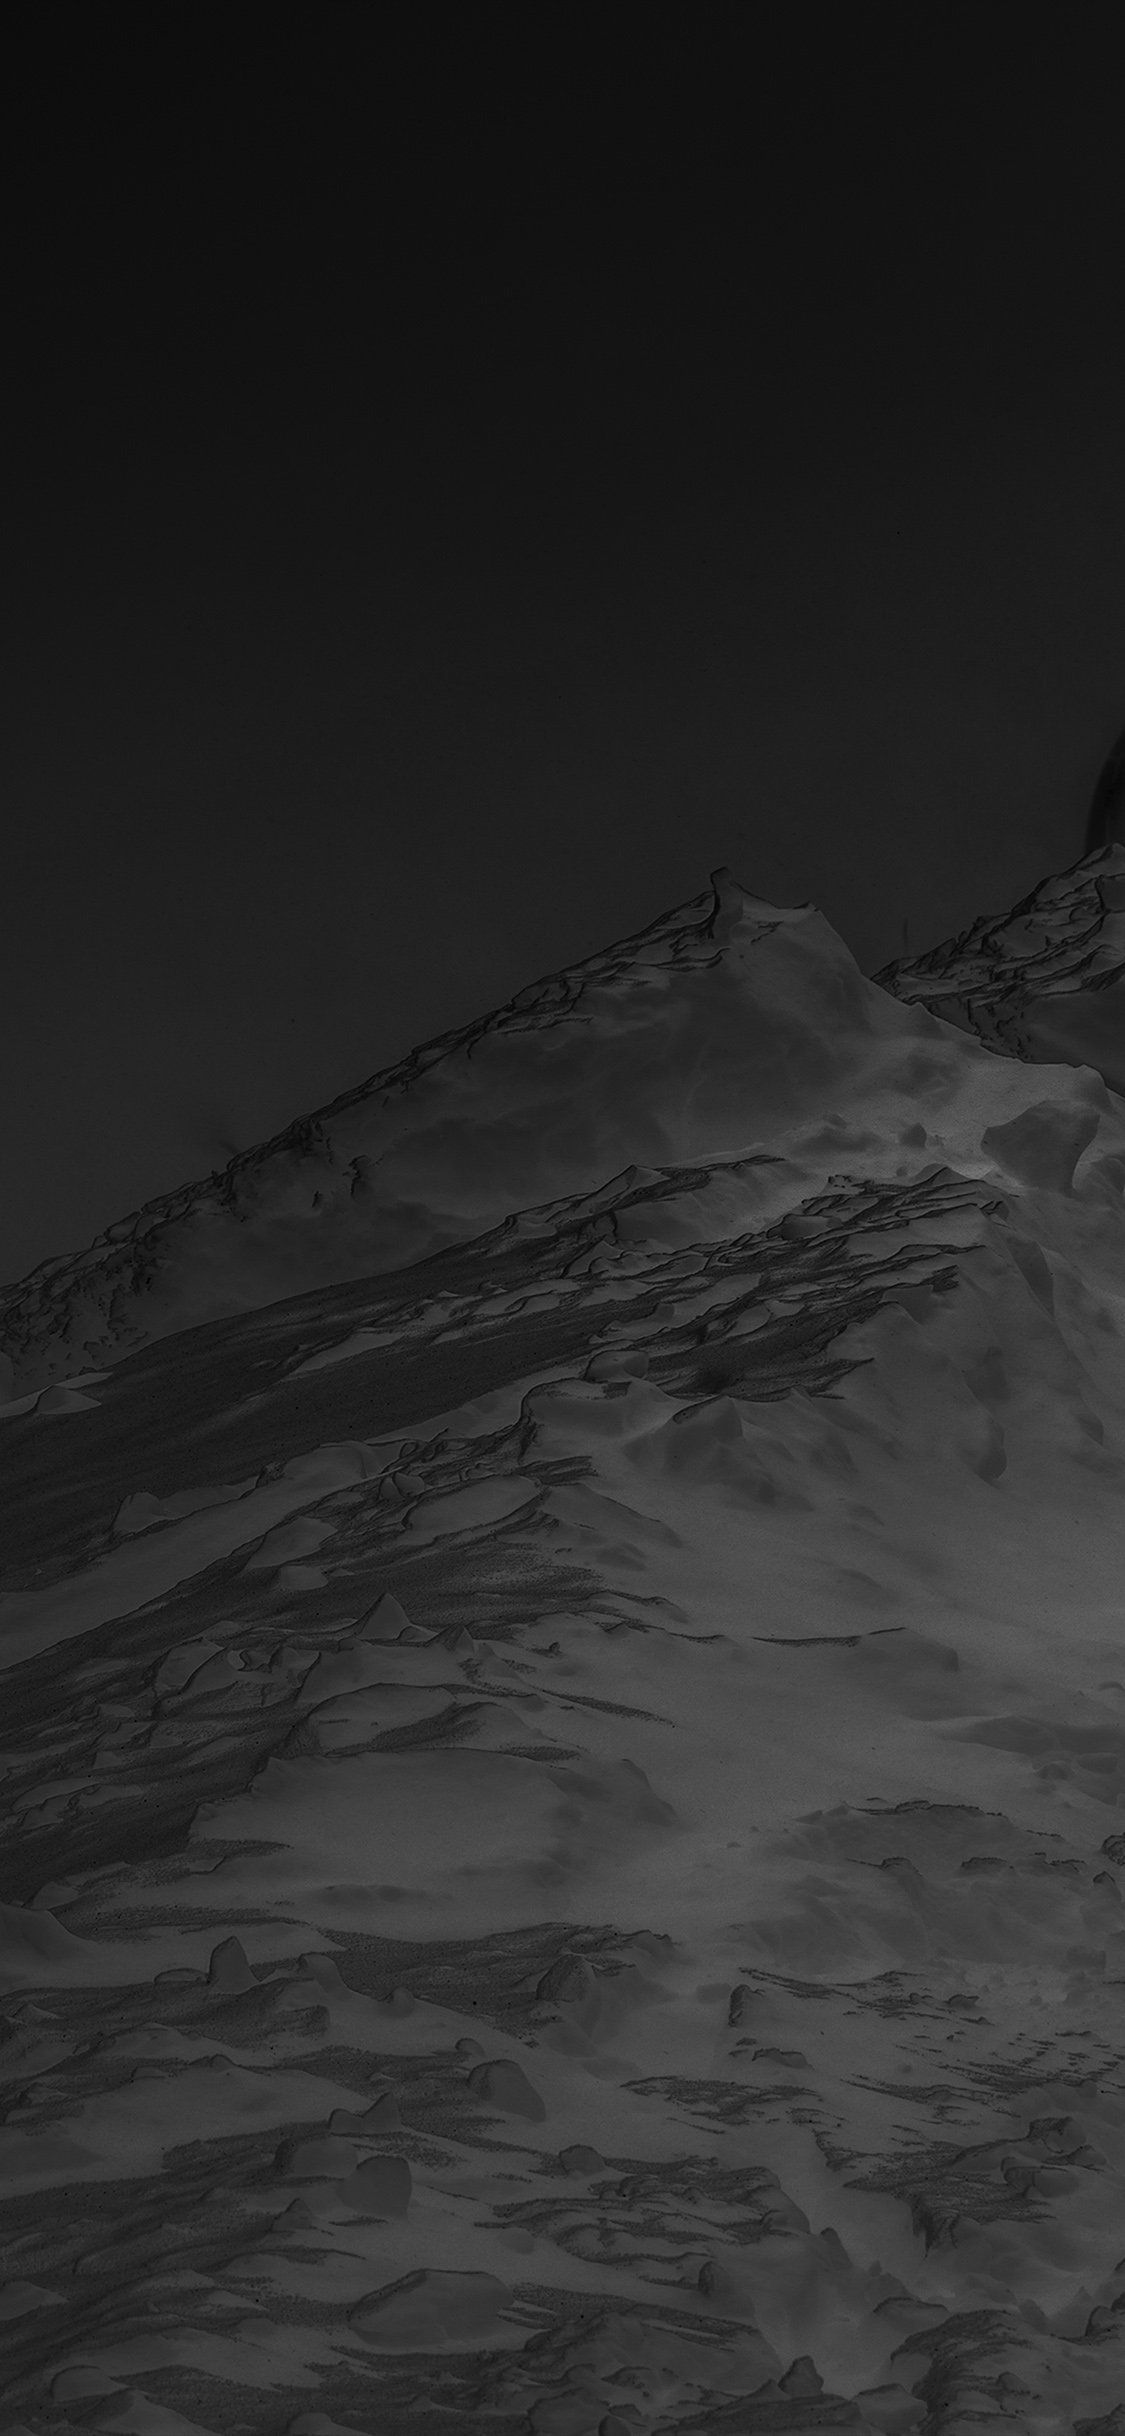 Pin by Yasith Jayasinghe on Wallpapers   Dark mountains ...